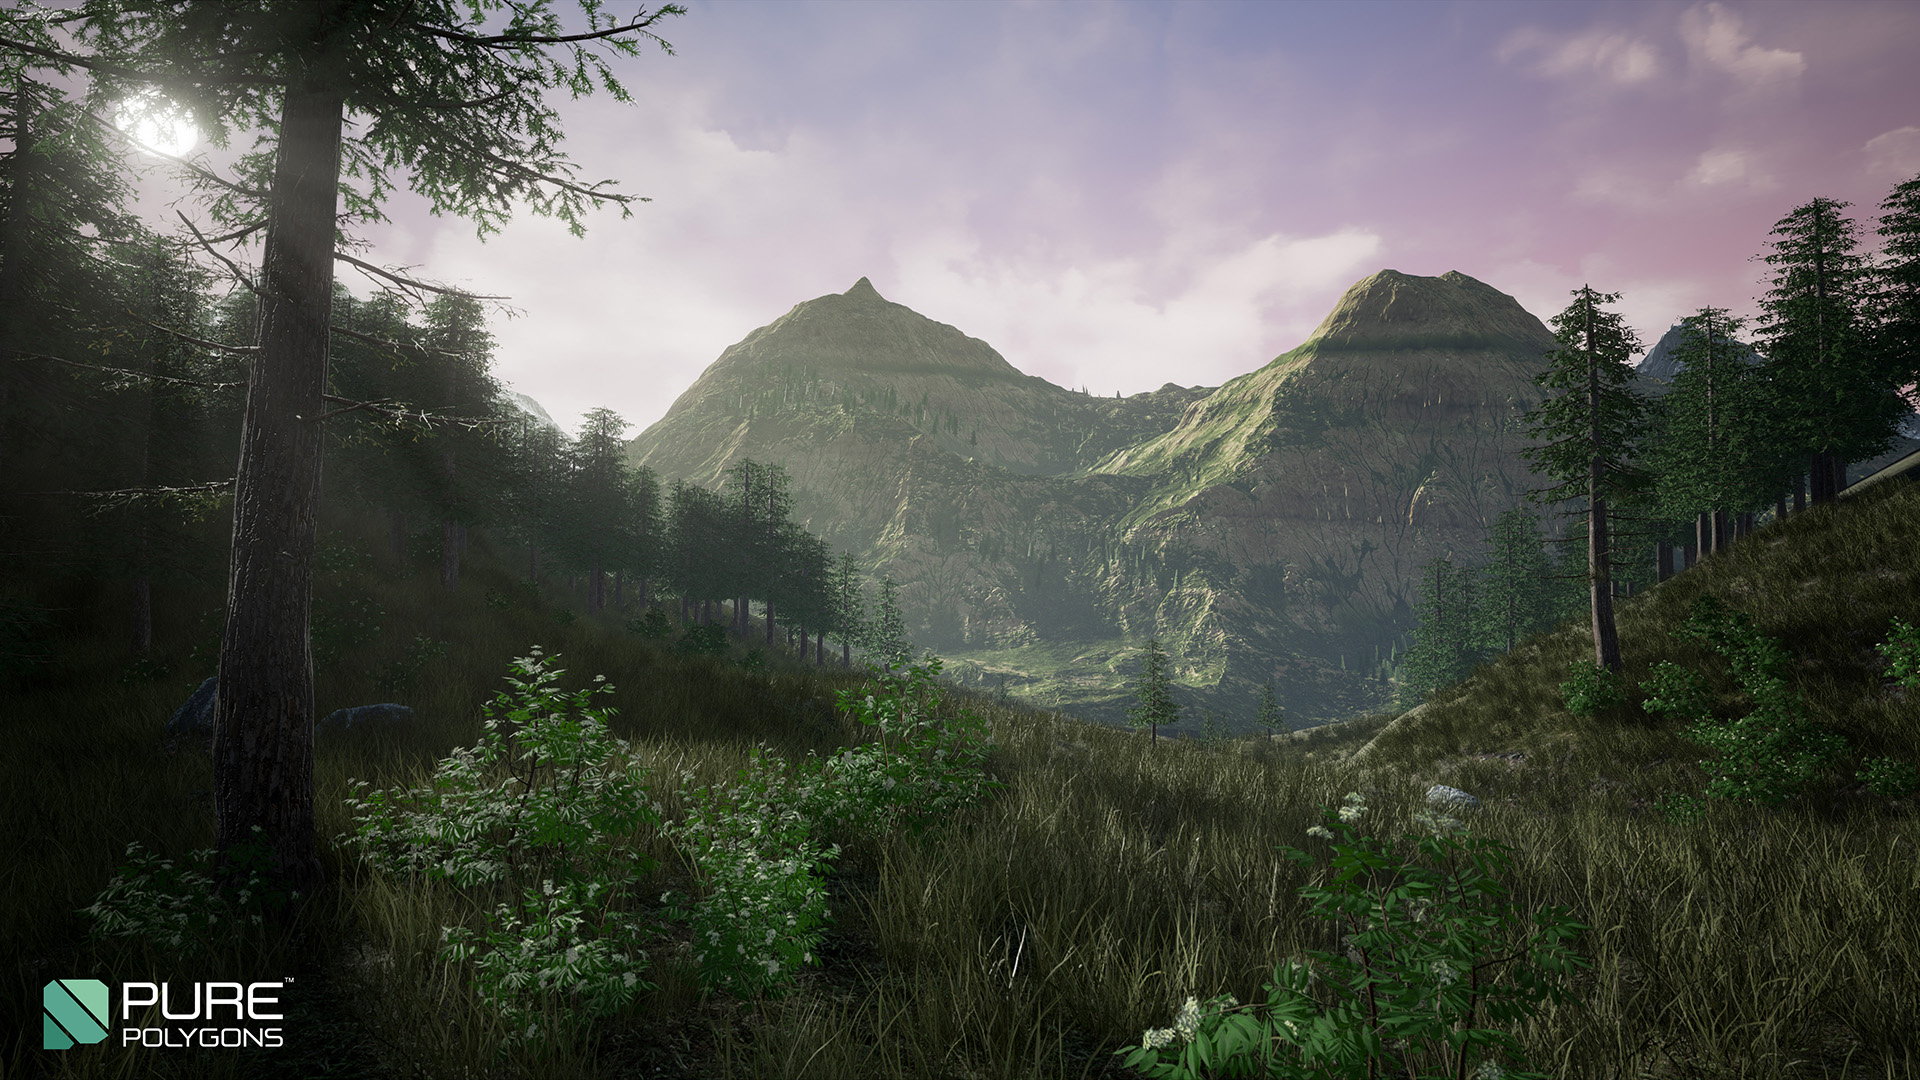 Procedural Nature Seasons Pack by PurePolygons in Environments - UE4